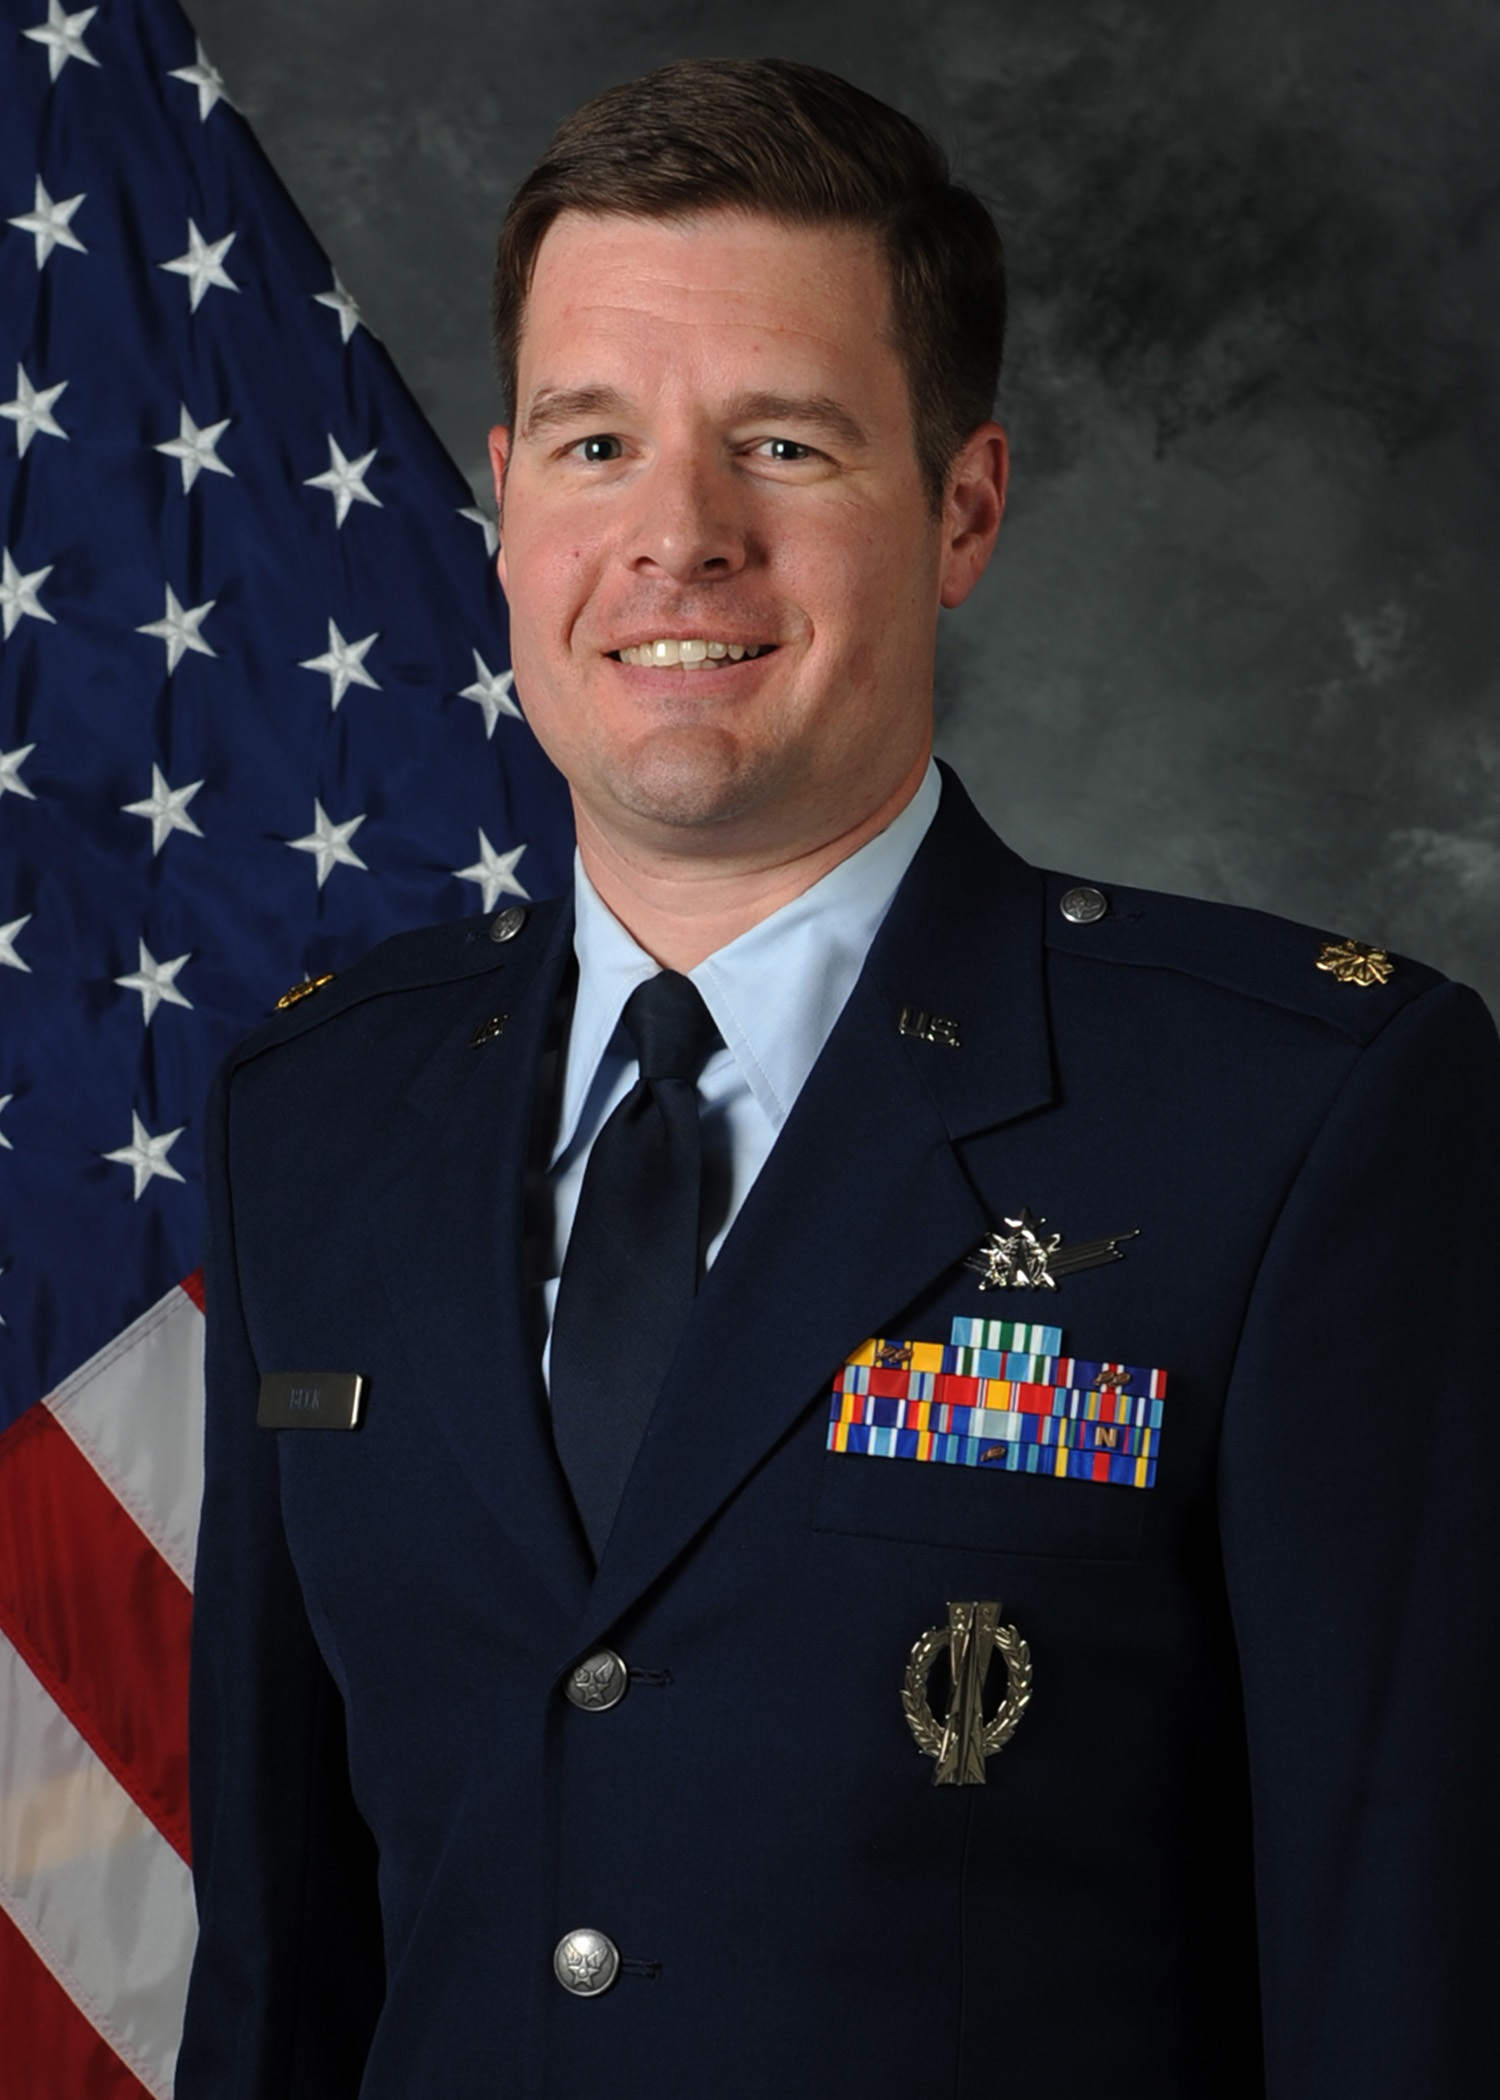 Photo of Maj Mathew Beck, USAF wearing military uniform